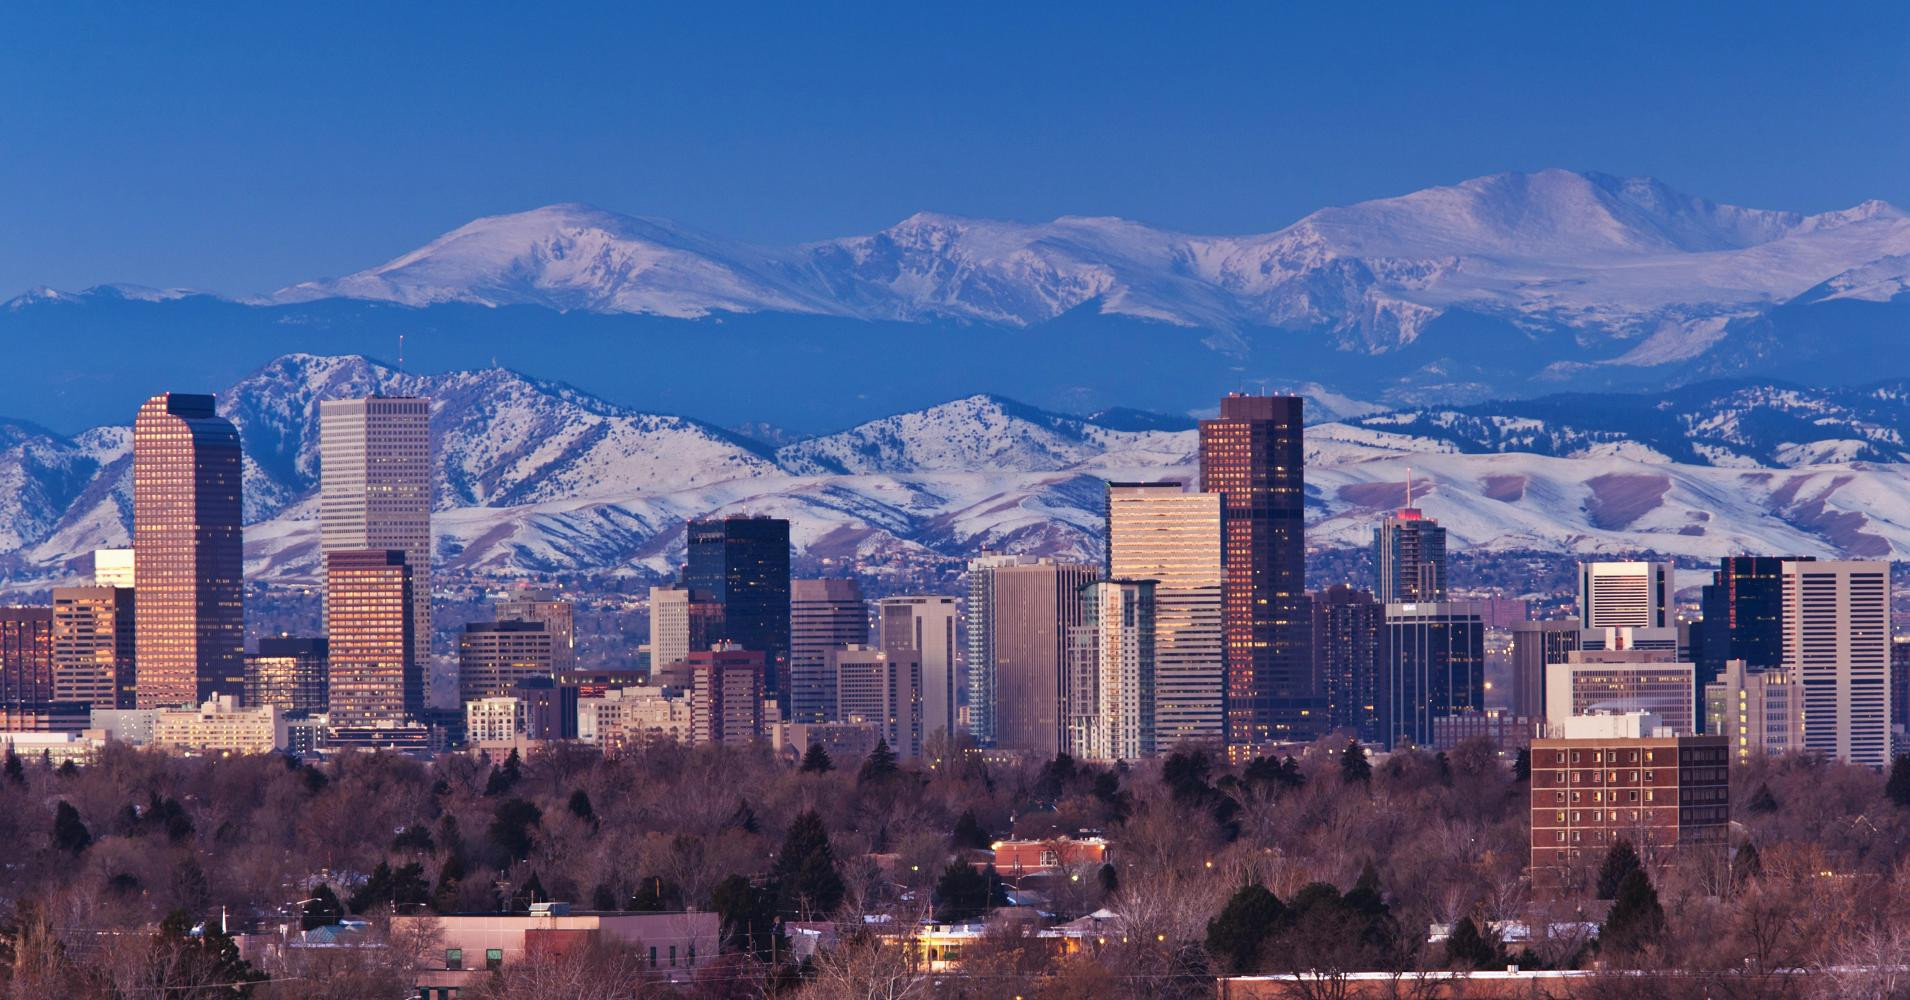 Potential host Denver claim can stage financially sustainable Winter Olympics if chosen for 2030